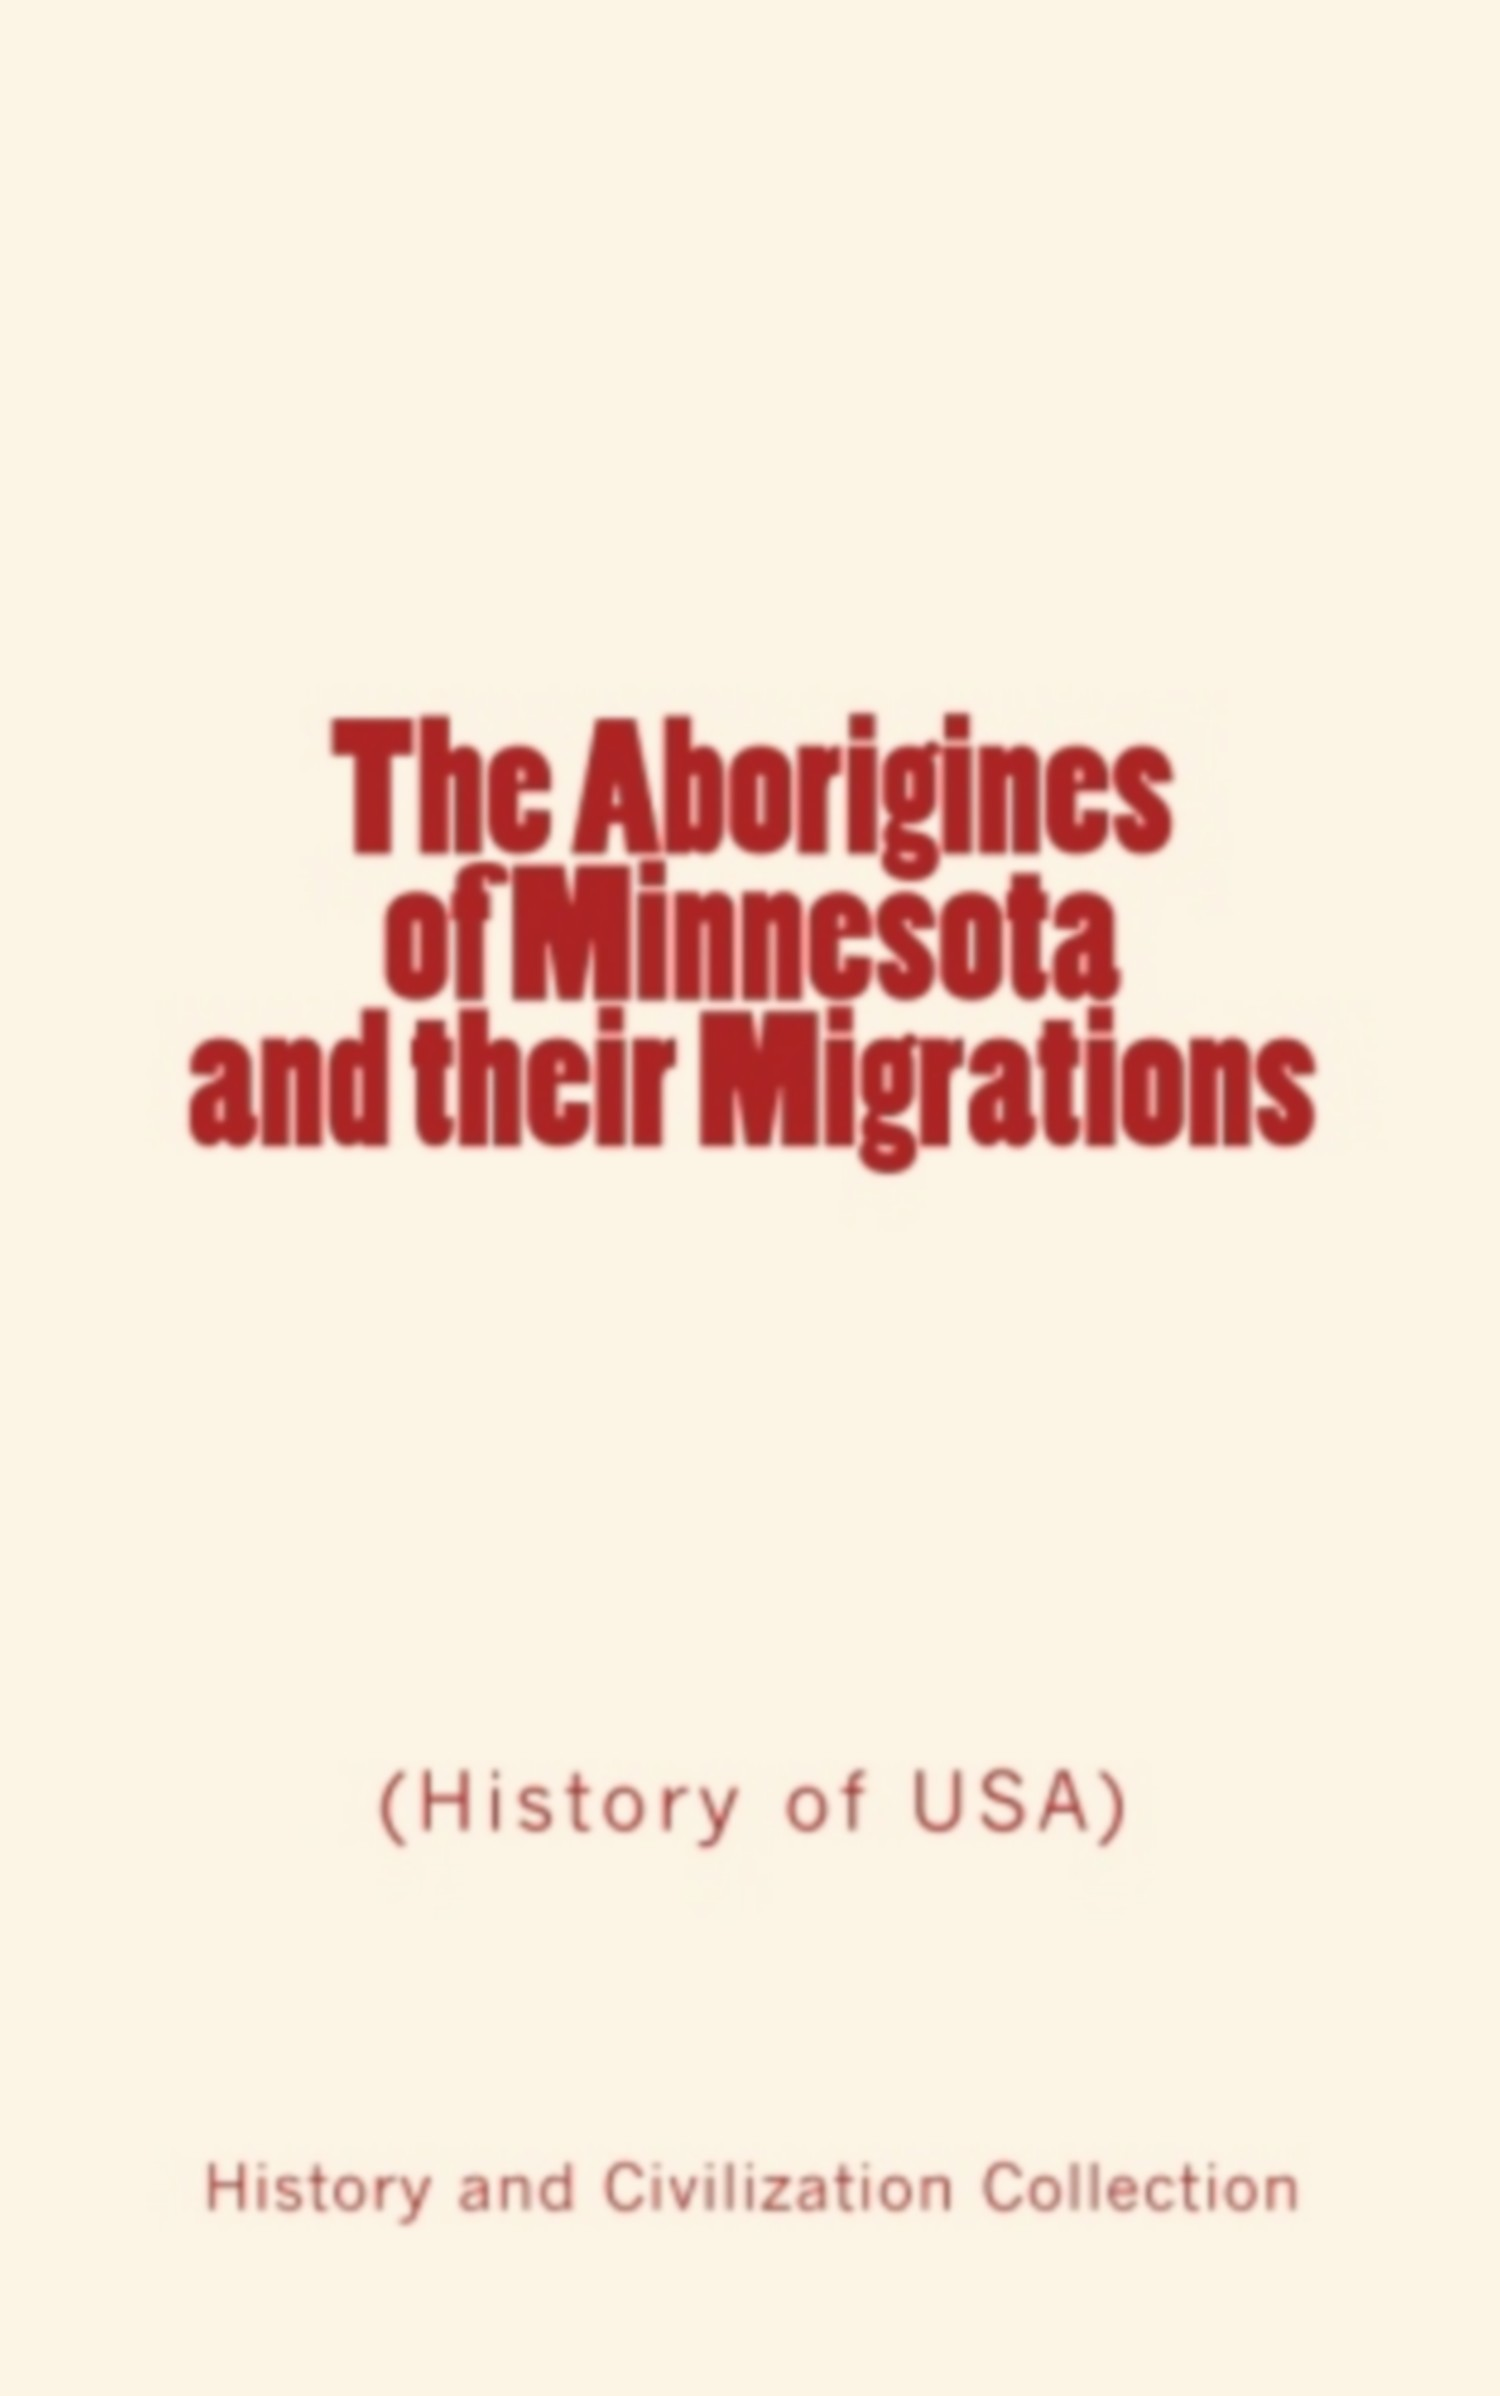 The Aborigines of Minnesota and their Migrations